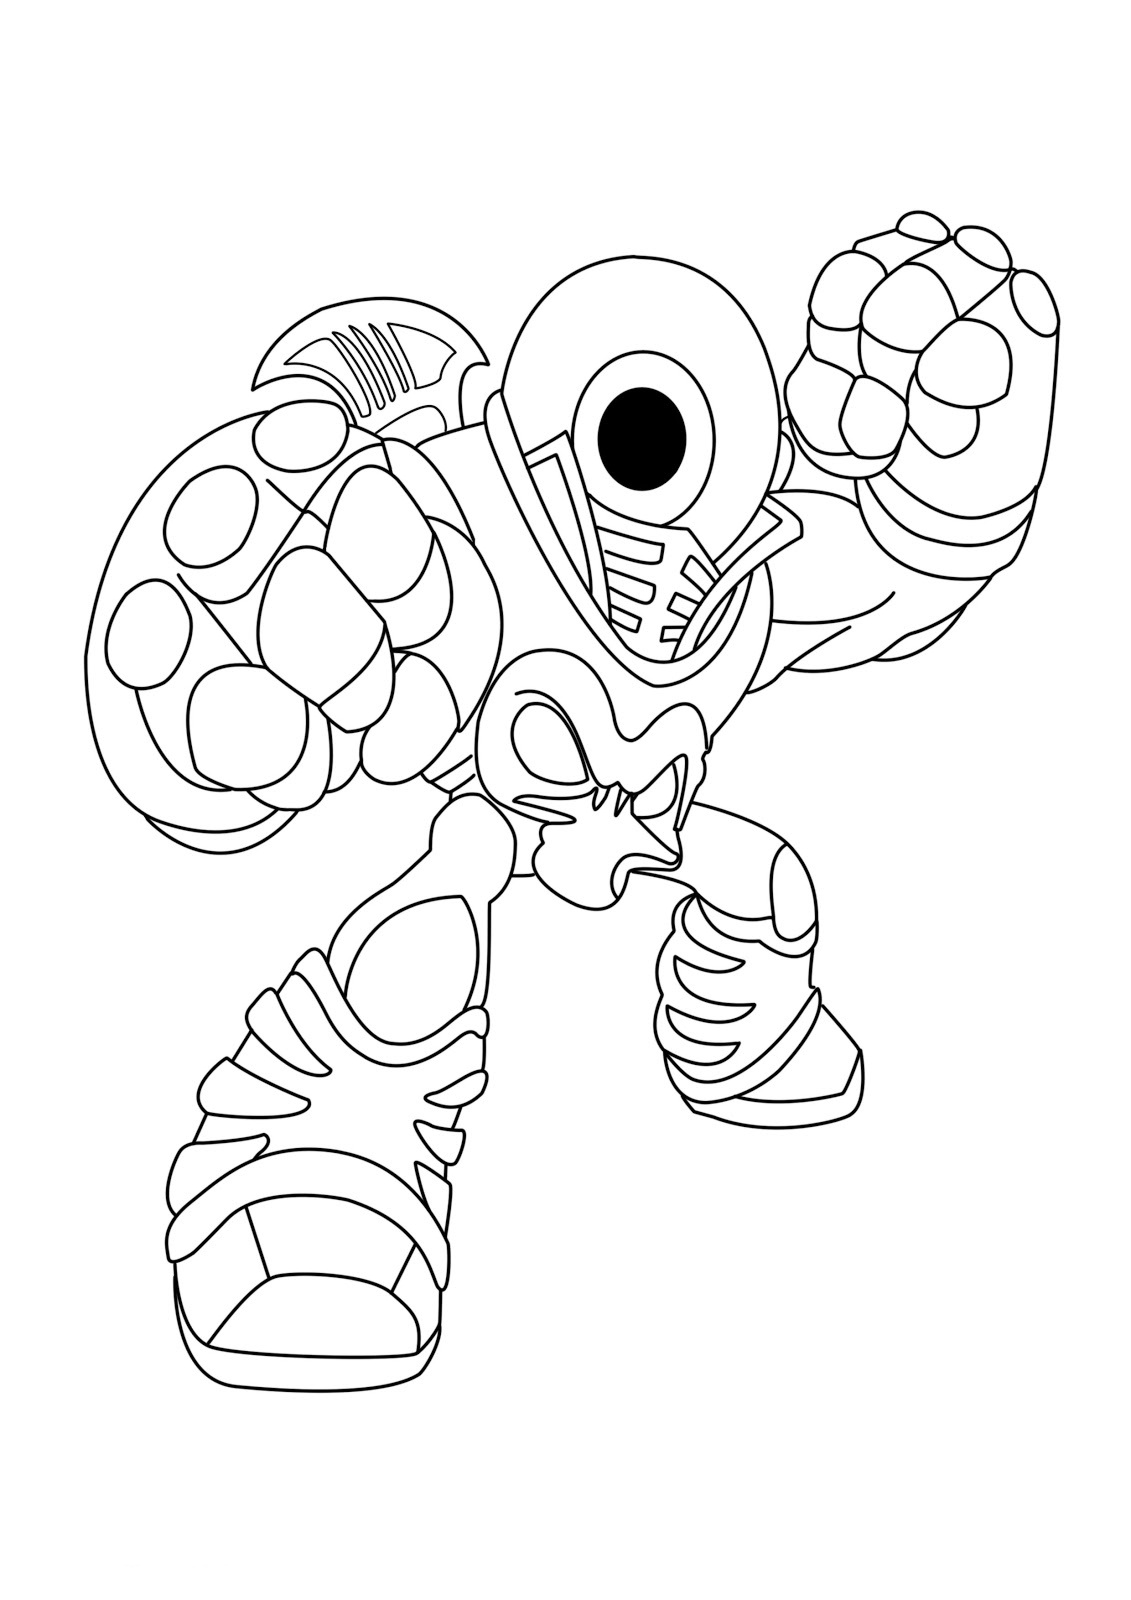 Skylander Coloring Pages Unique Free Printable Skylander Giants Coloring Pages For Kids 2017